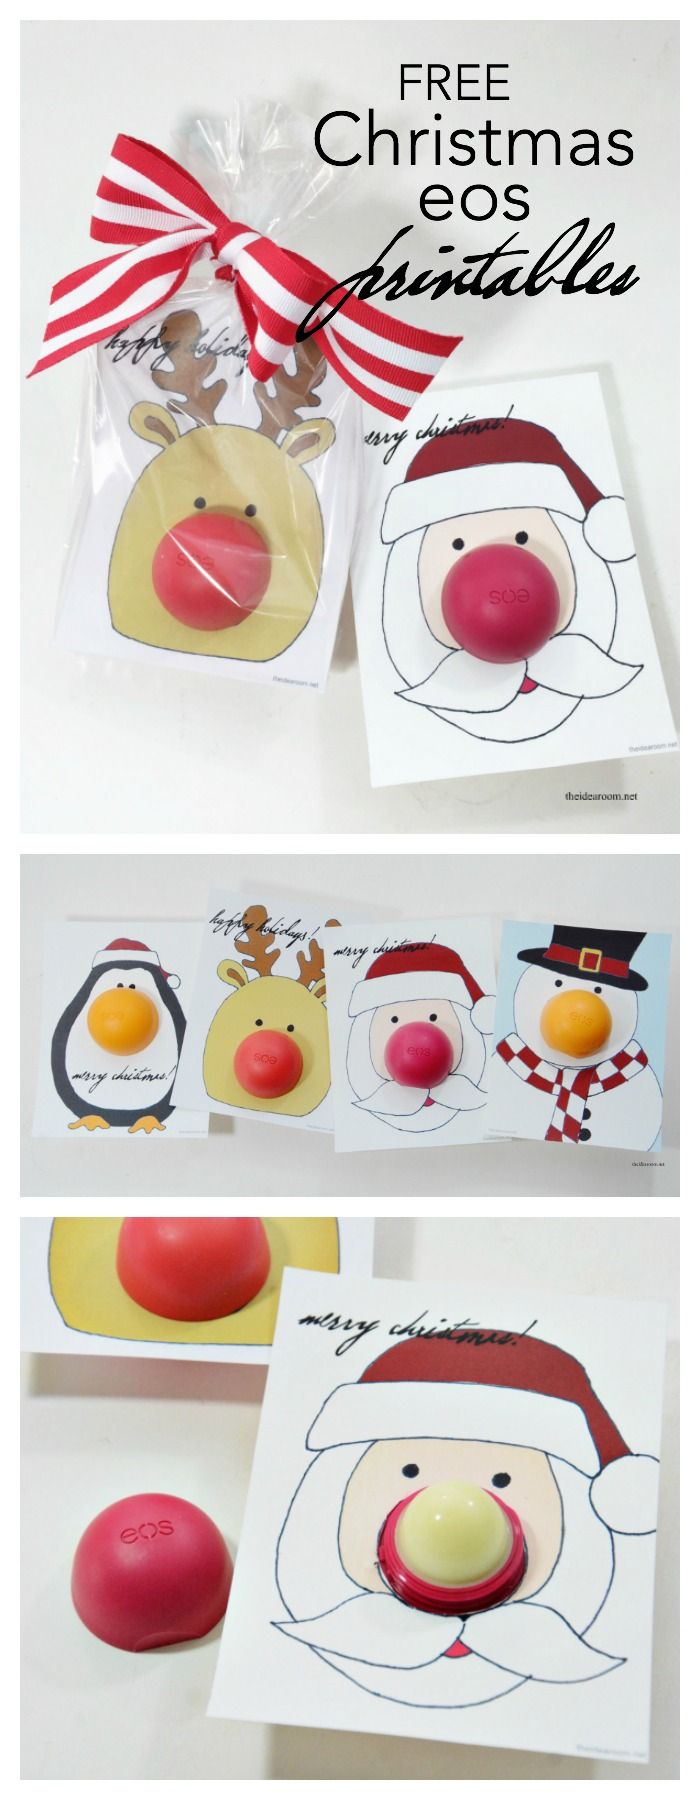 Christmas | Free printable eos Christmas Gifts or stocking stuffers for your friends, family and teachers. So easy to make and so fun for someone who loves eos.